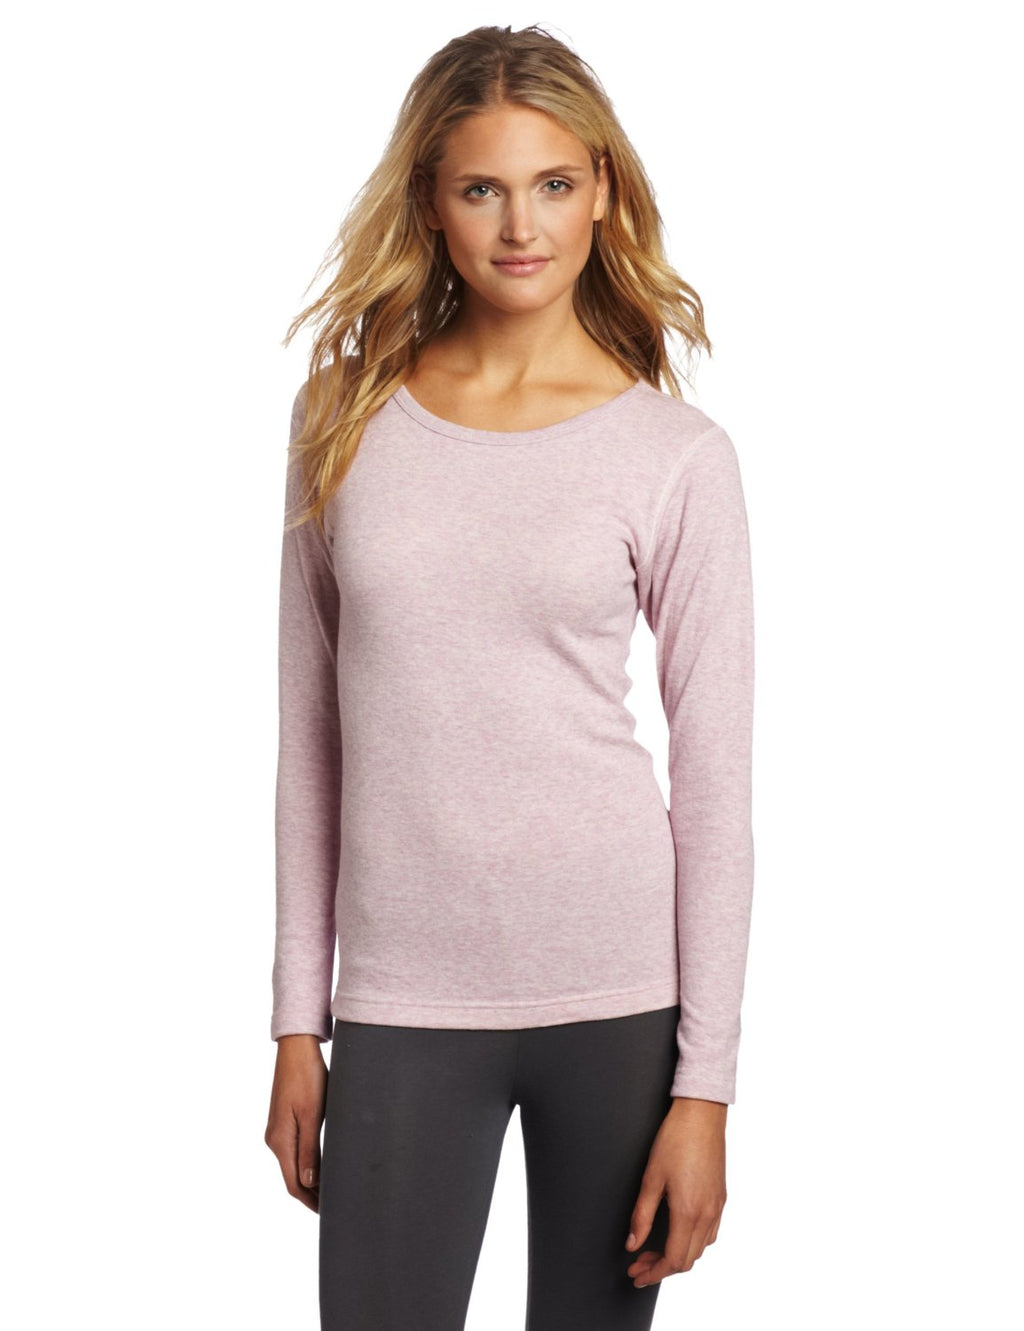 Duofold Originals Mid-Weight Crewneck Women's Thermal-Underwear Top